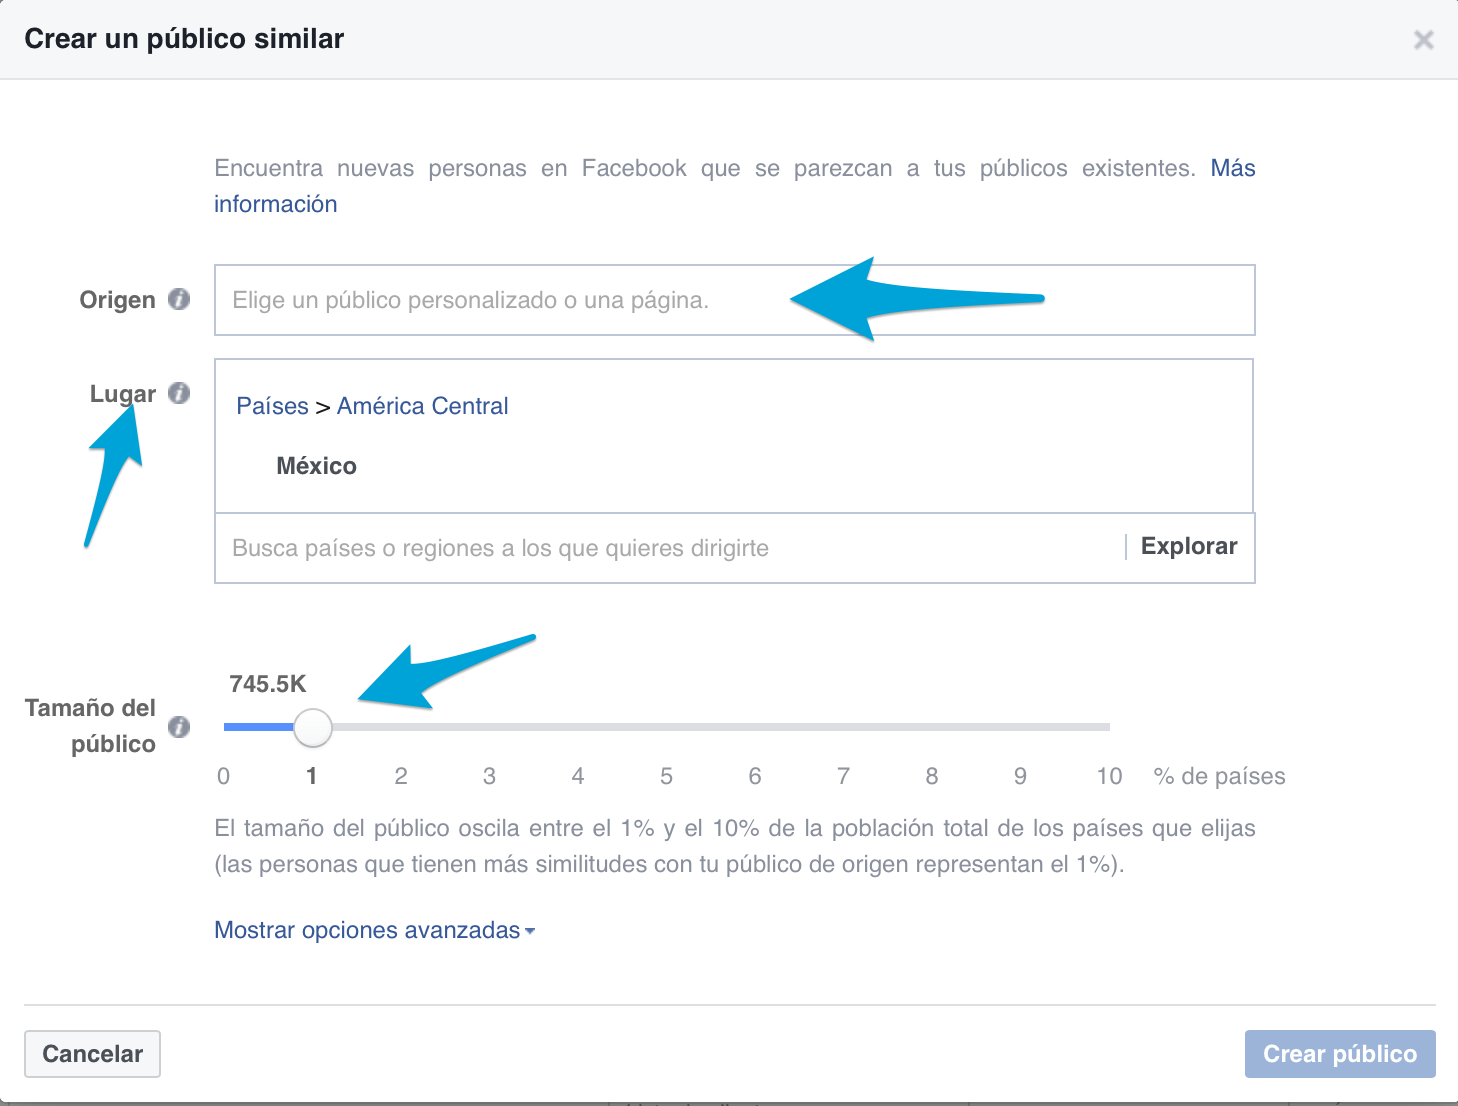 Creando-publico-similar-en-facebook-Aprendamos-Marketing